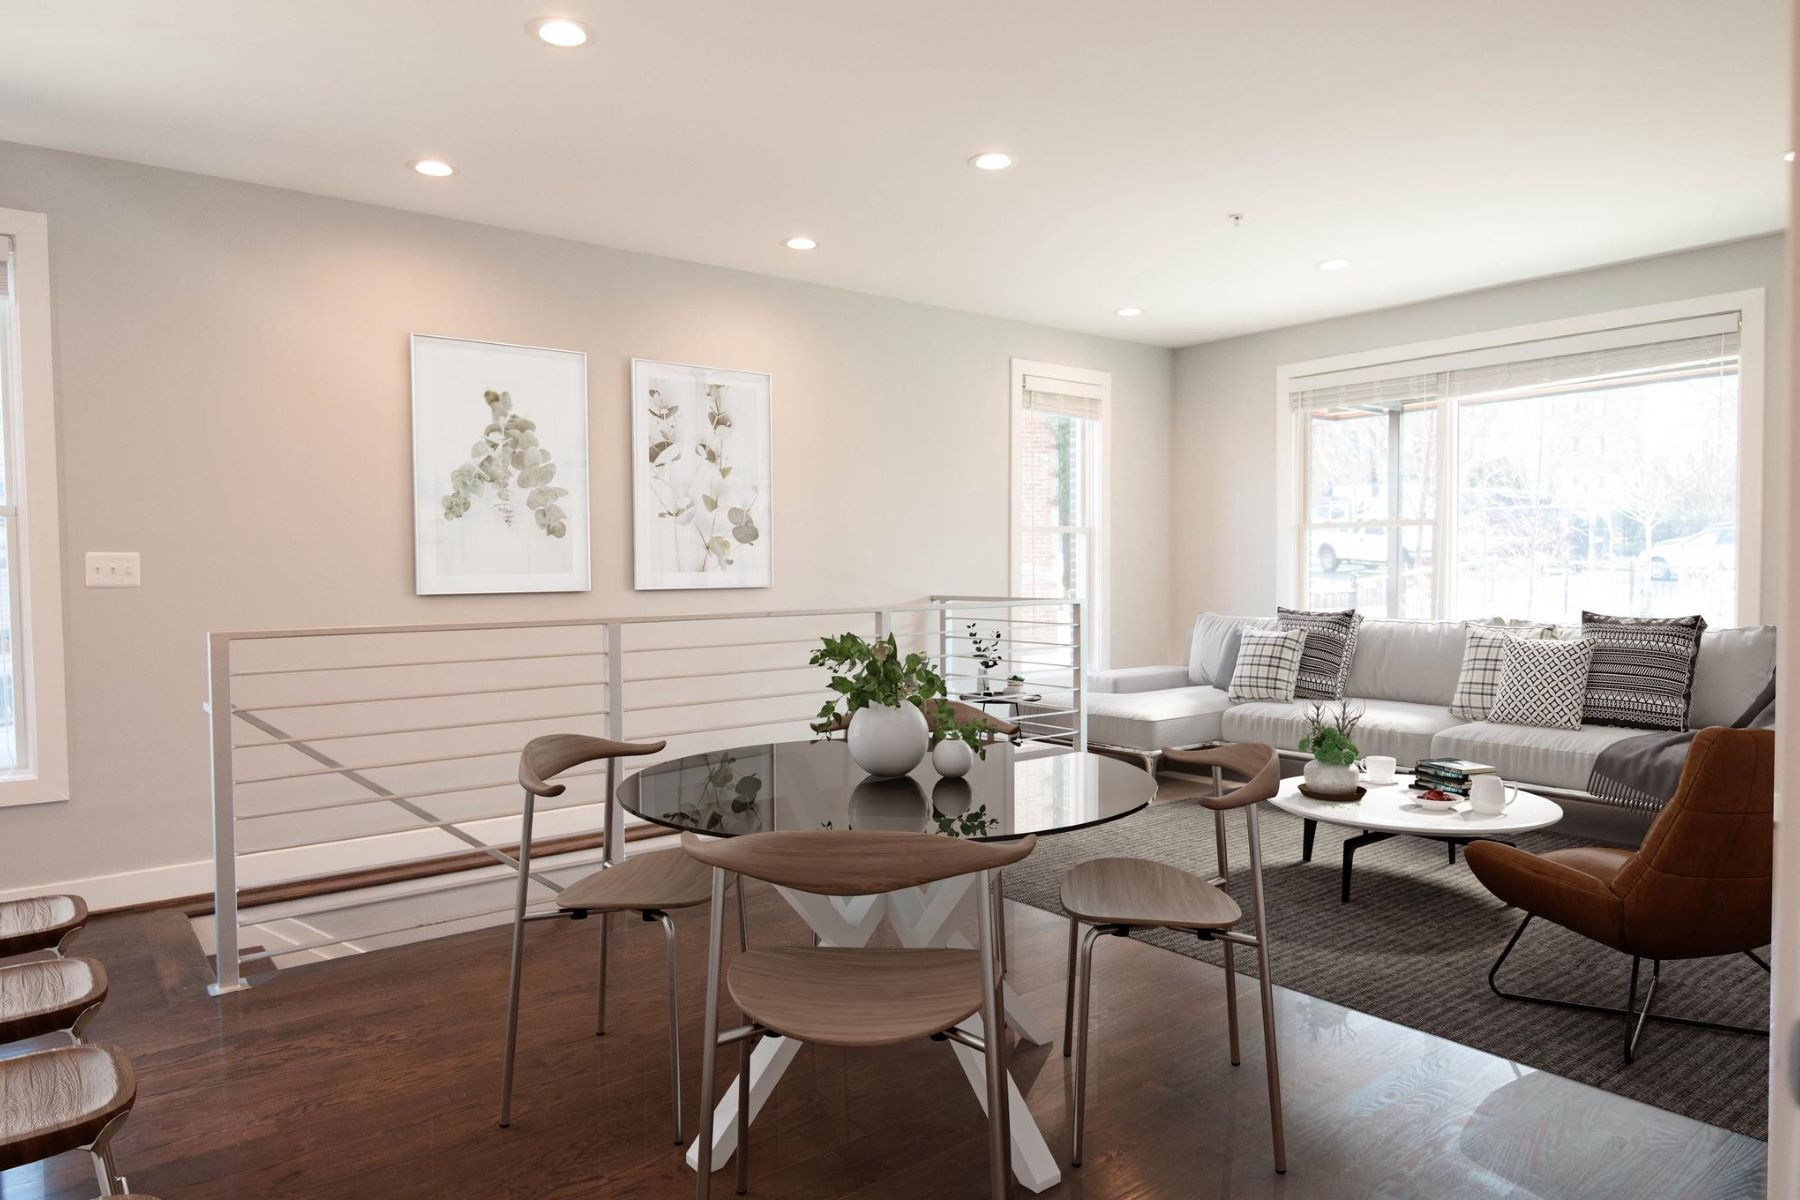 Other Residential for Sale at 37 Missouri Ave NW #12 37 Missouri Ave NW #12 Washington, District Of Columbia 20011 United States